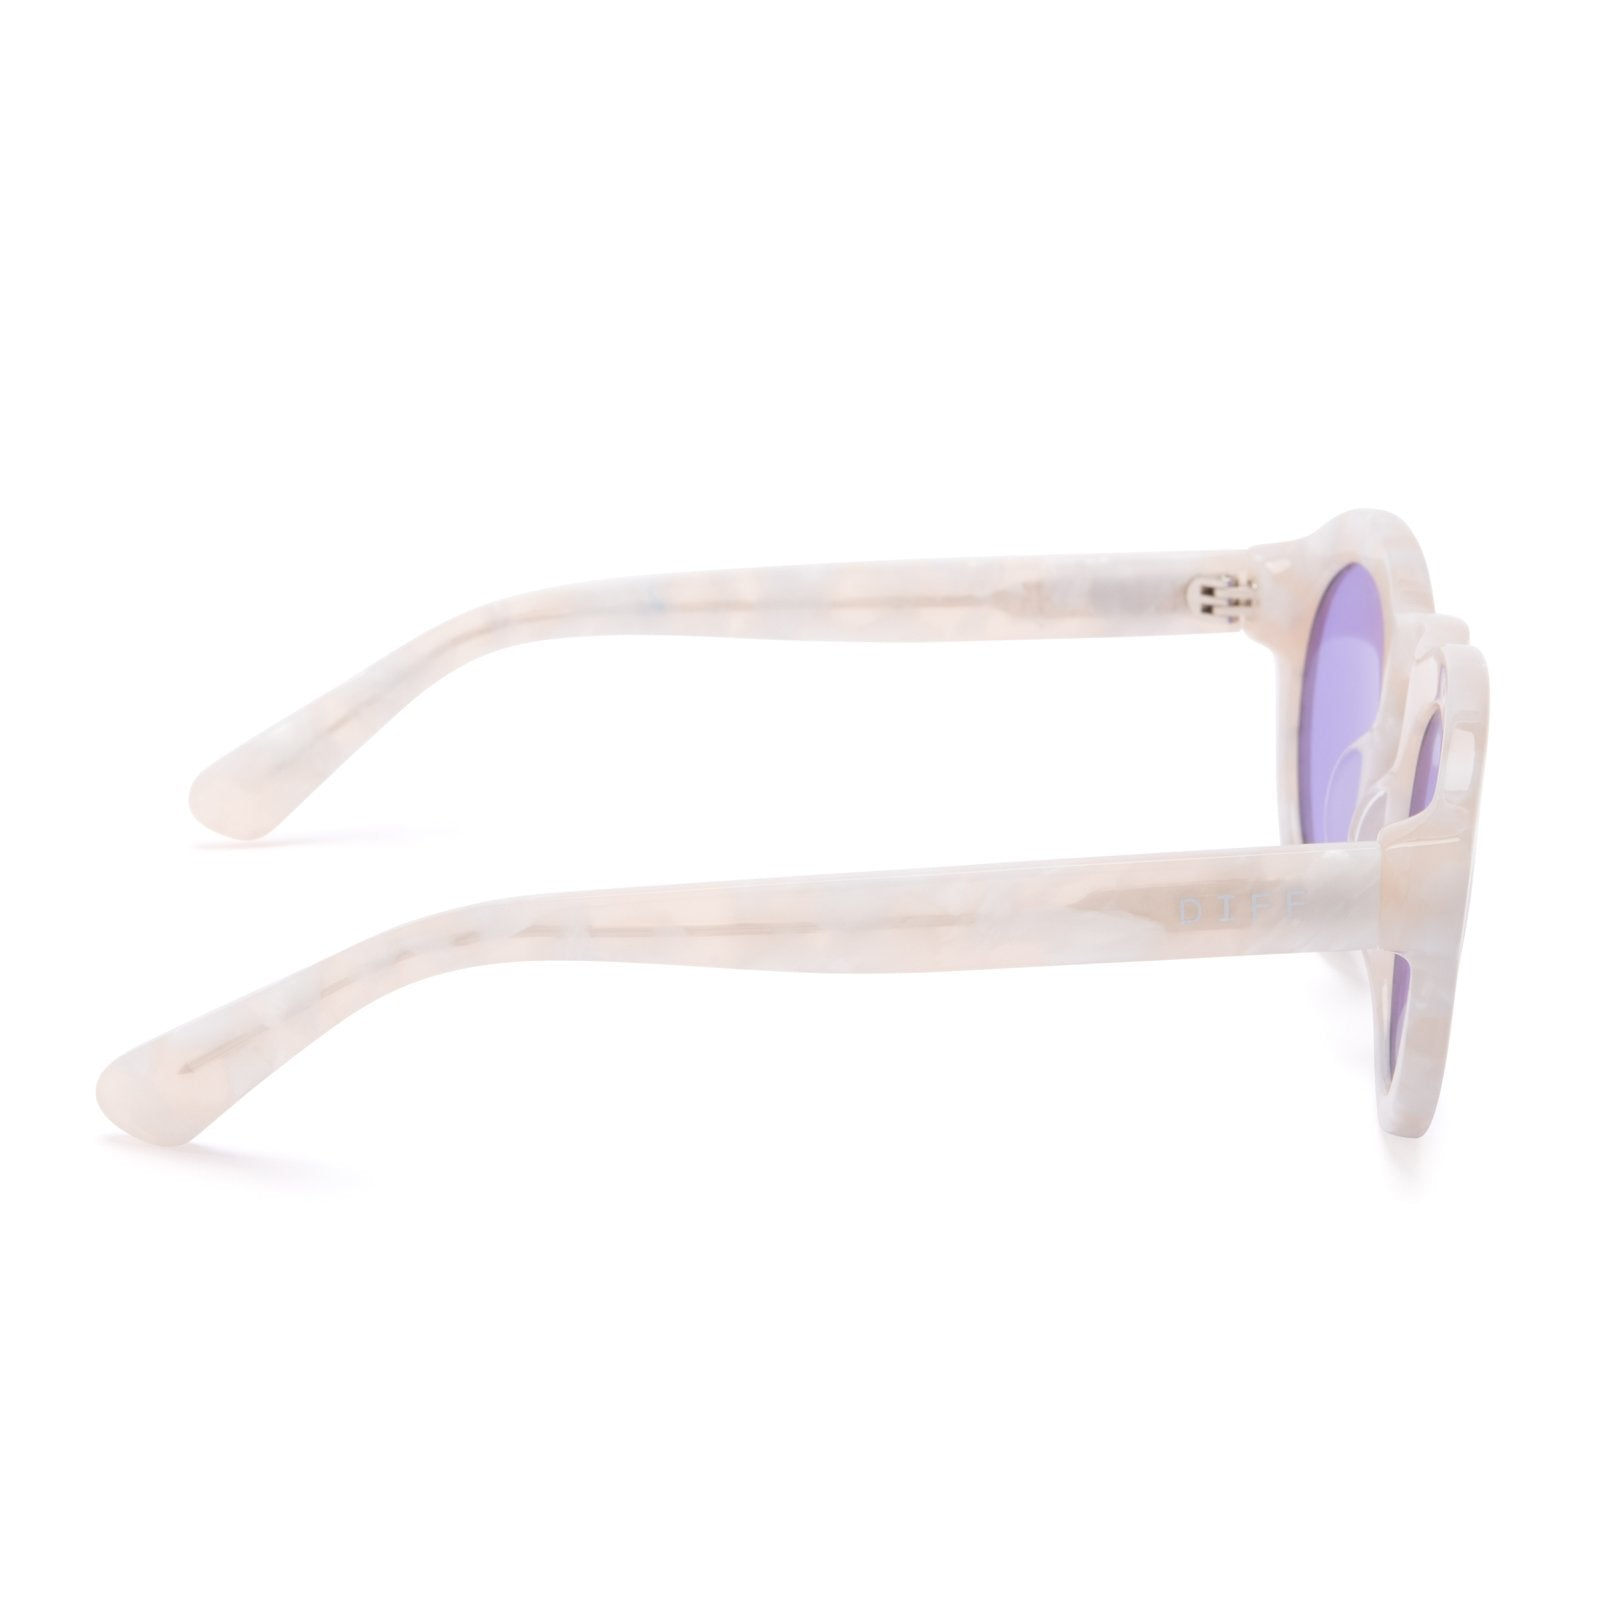 Lil dime sunglasses with white pearl frames and lavender flash lens side view